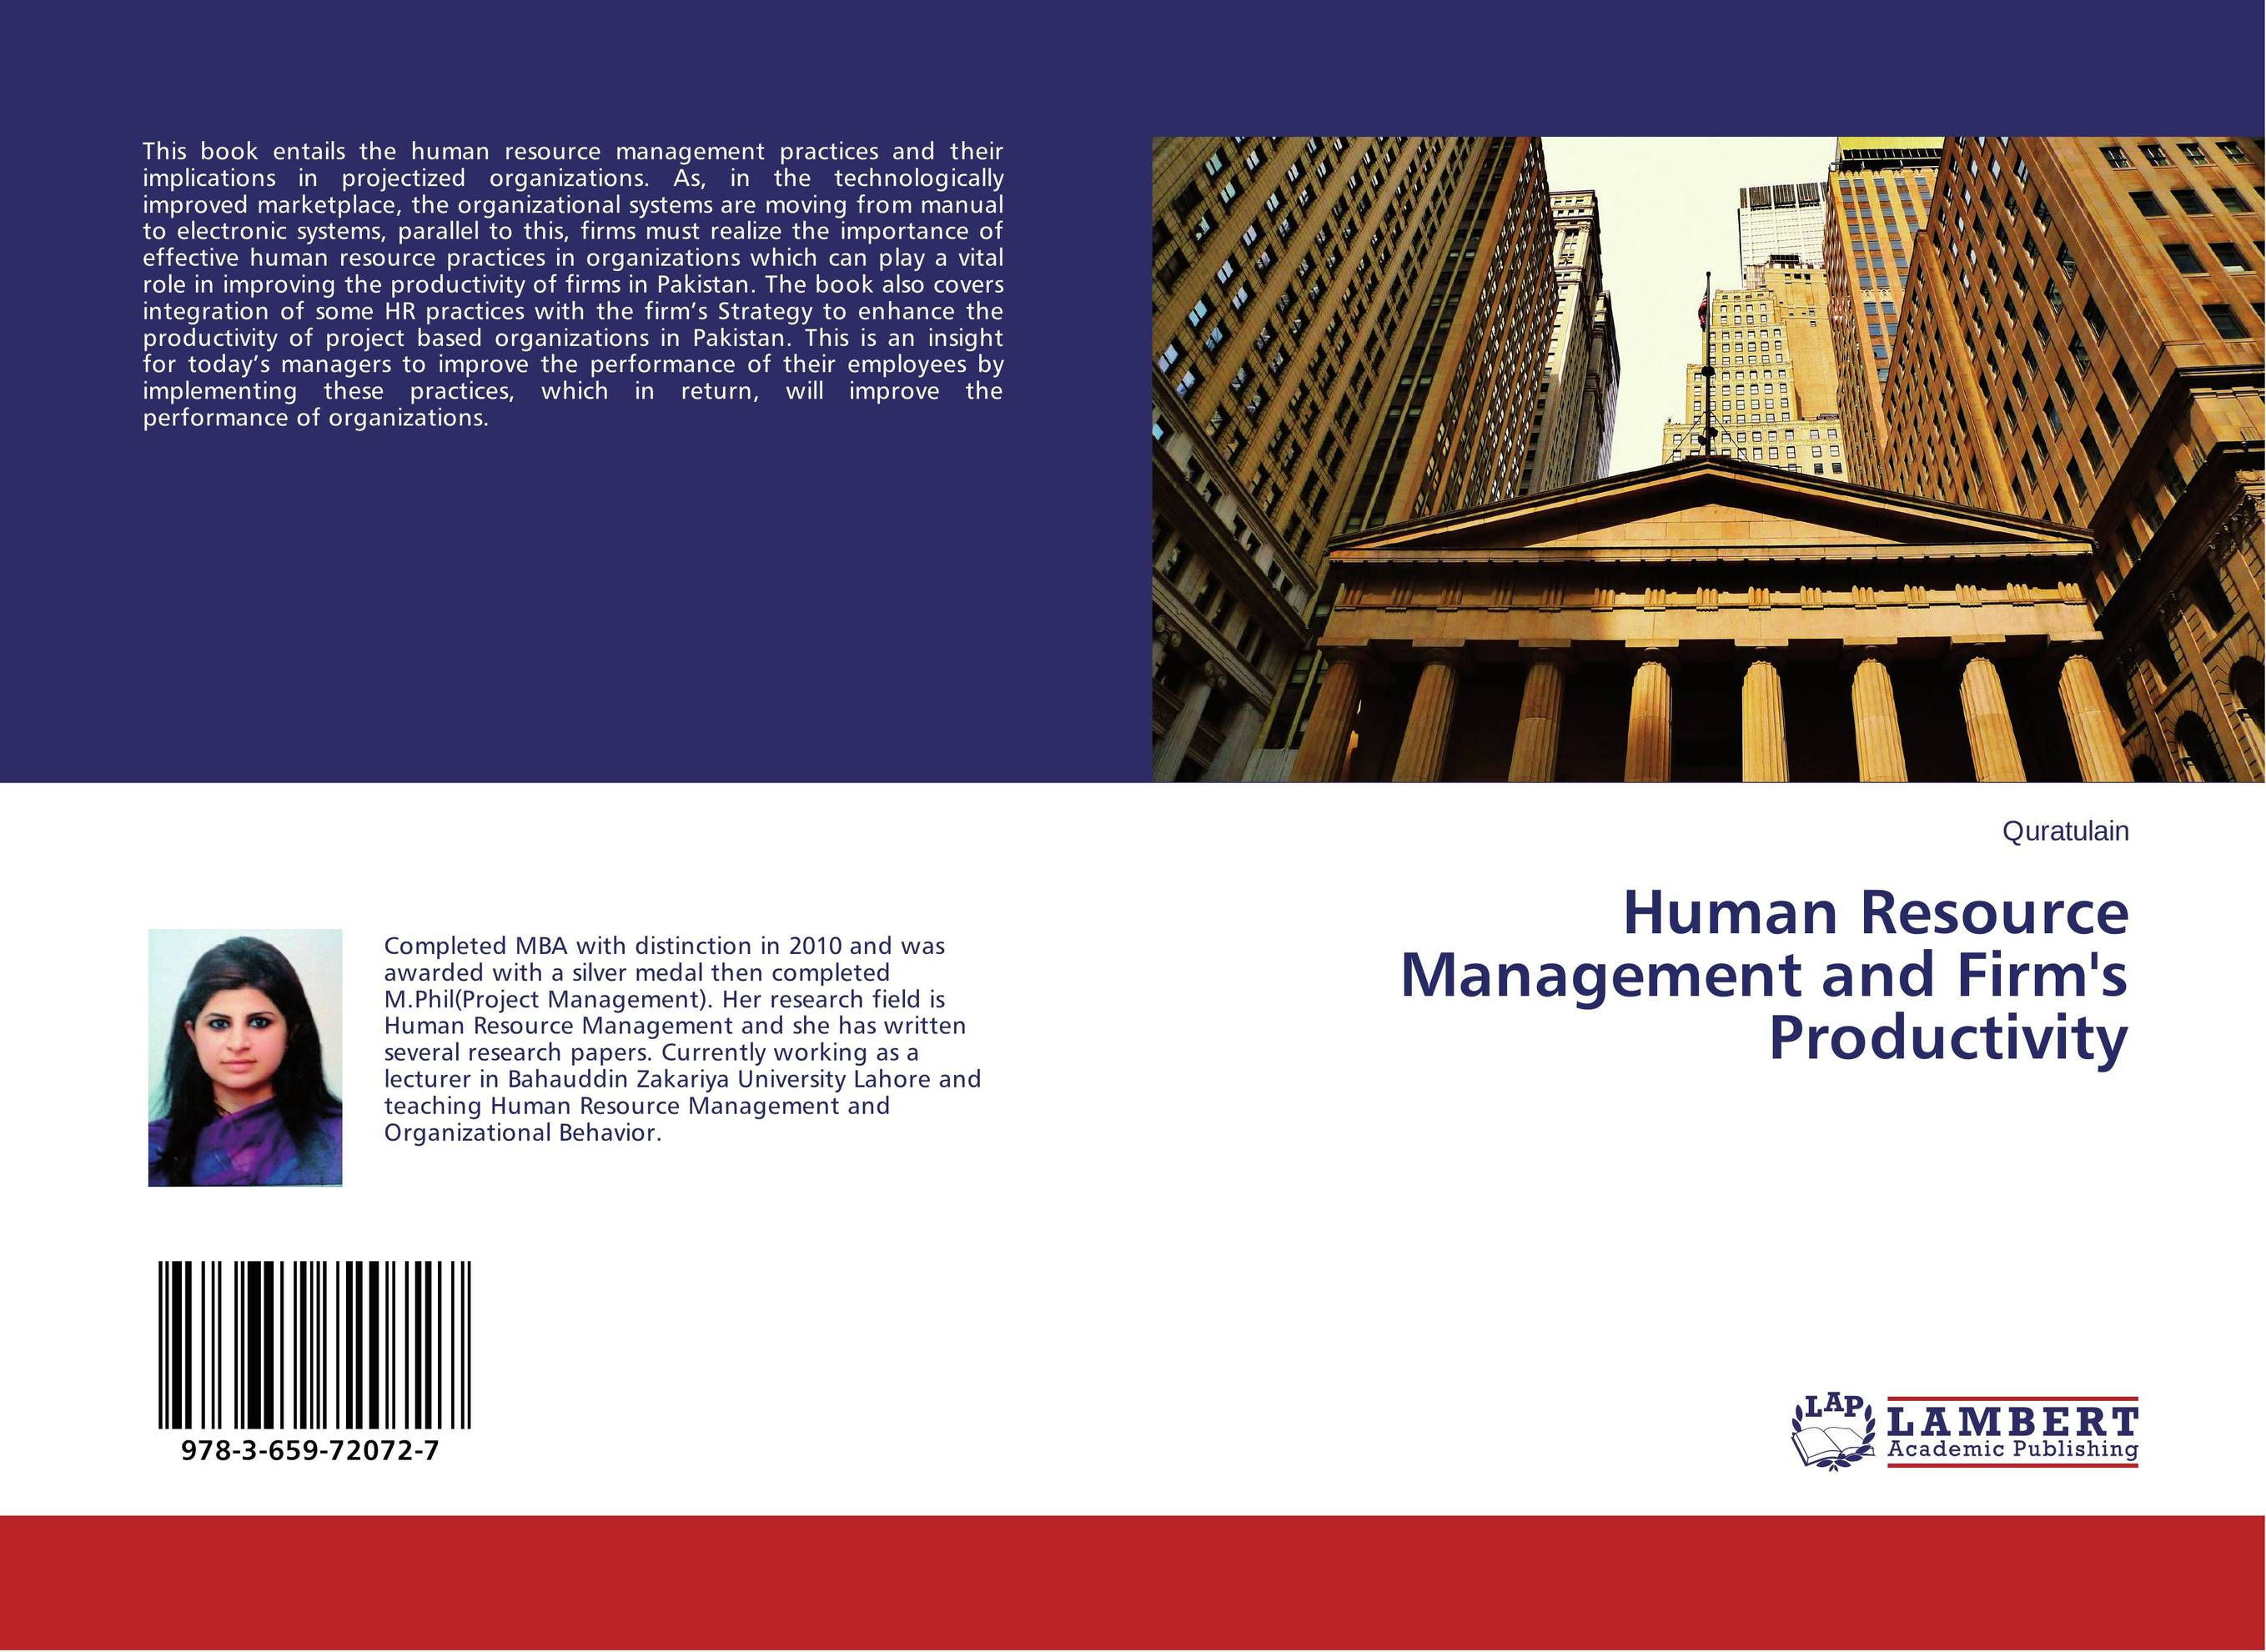 the human relations in management business essay Business management is essential for me because i have a great desire to successfully manage people and business projects, as well as to develop effective business-related policies i want to major.